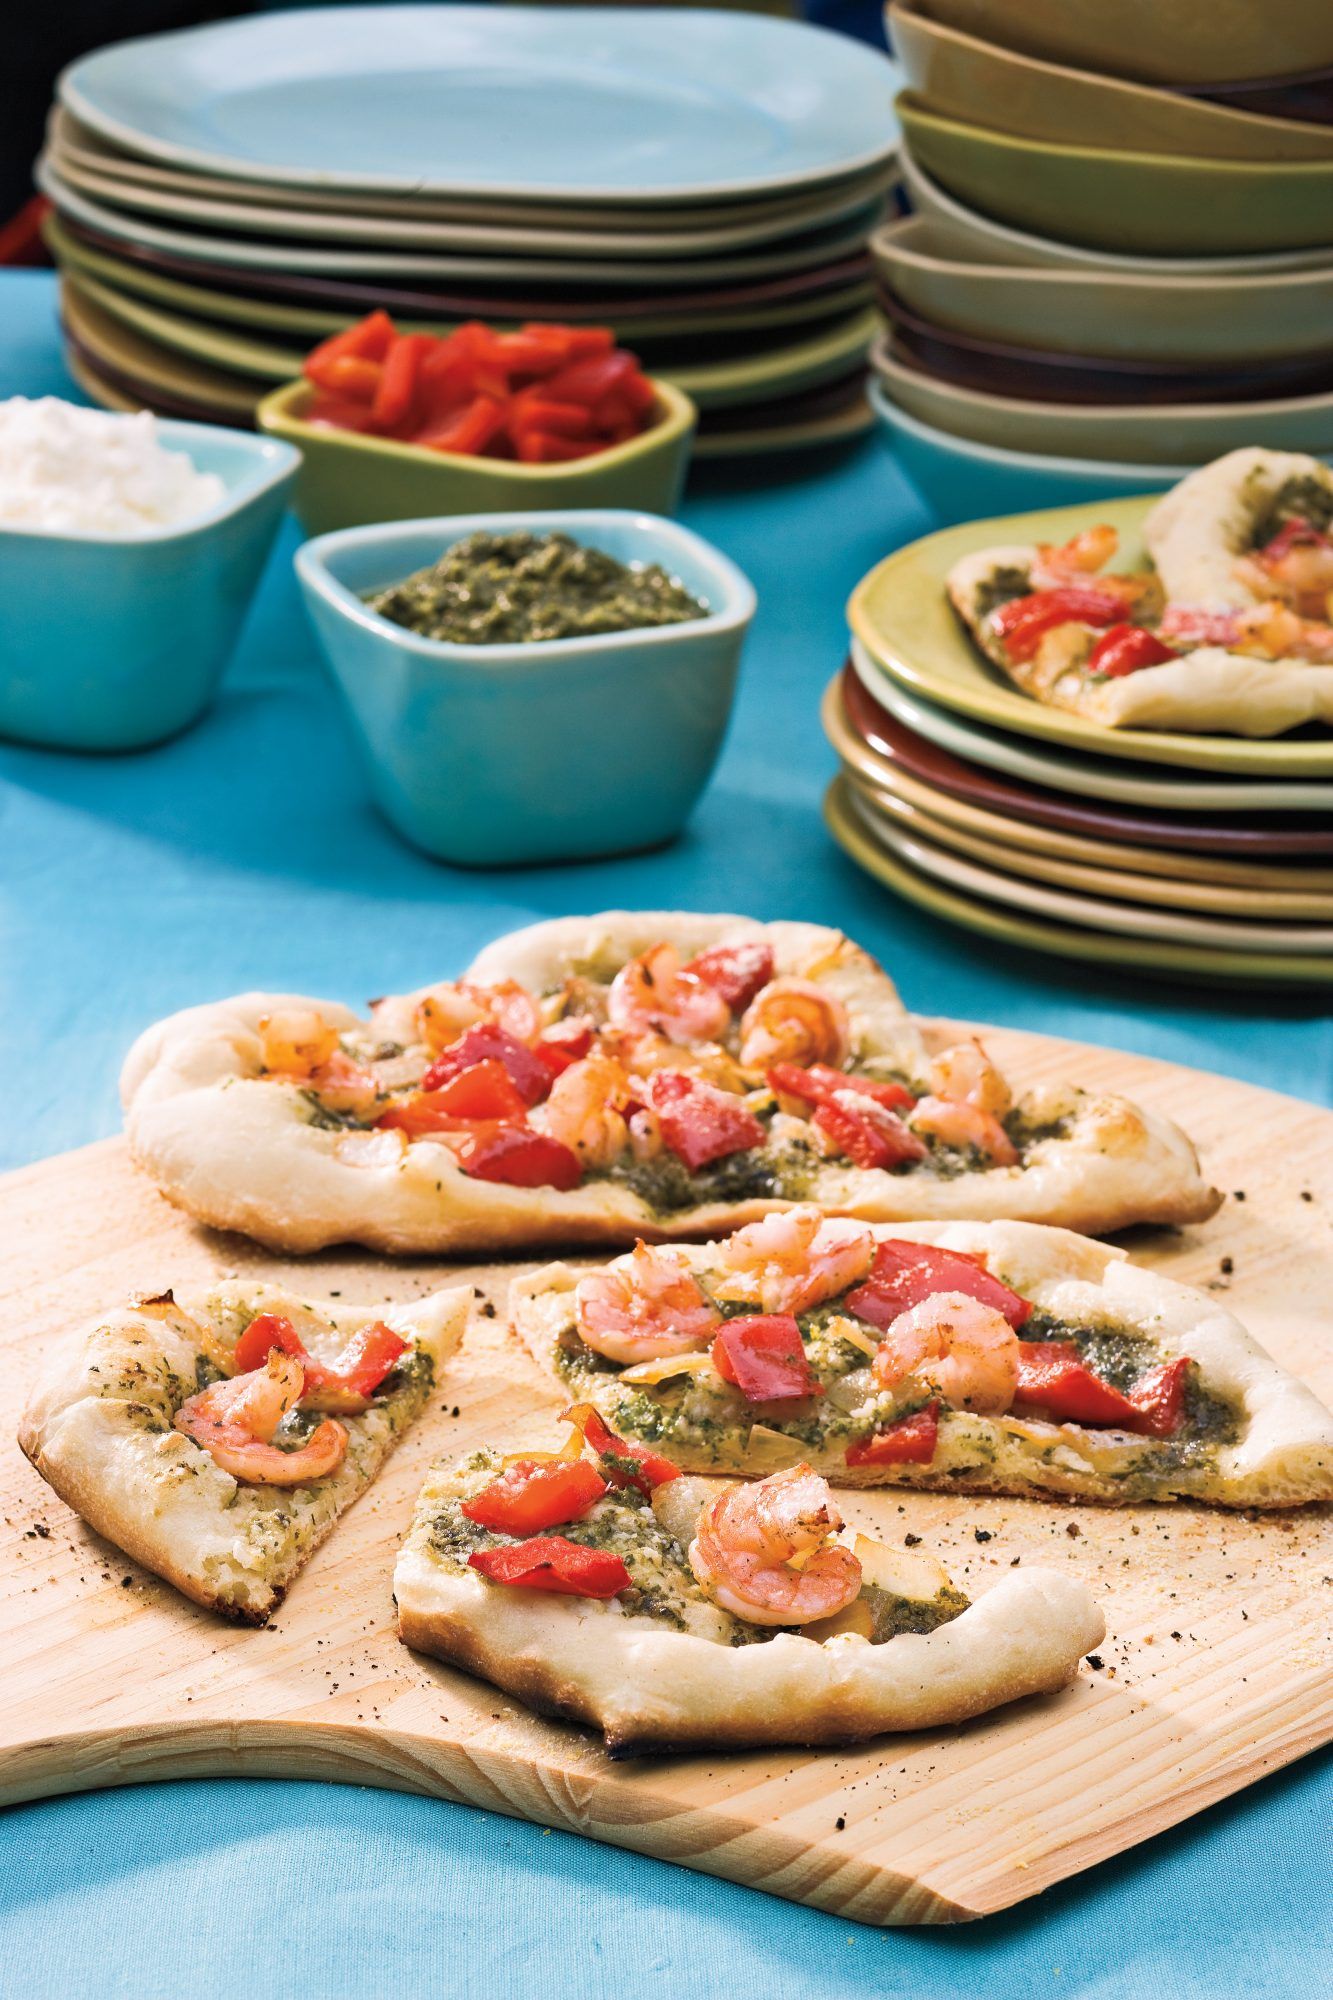 Wedding Bridal Shower Ideas: Grilled Pizzas